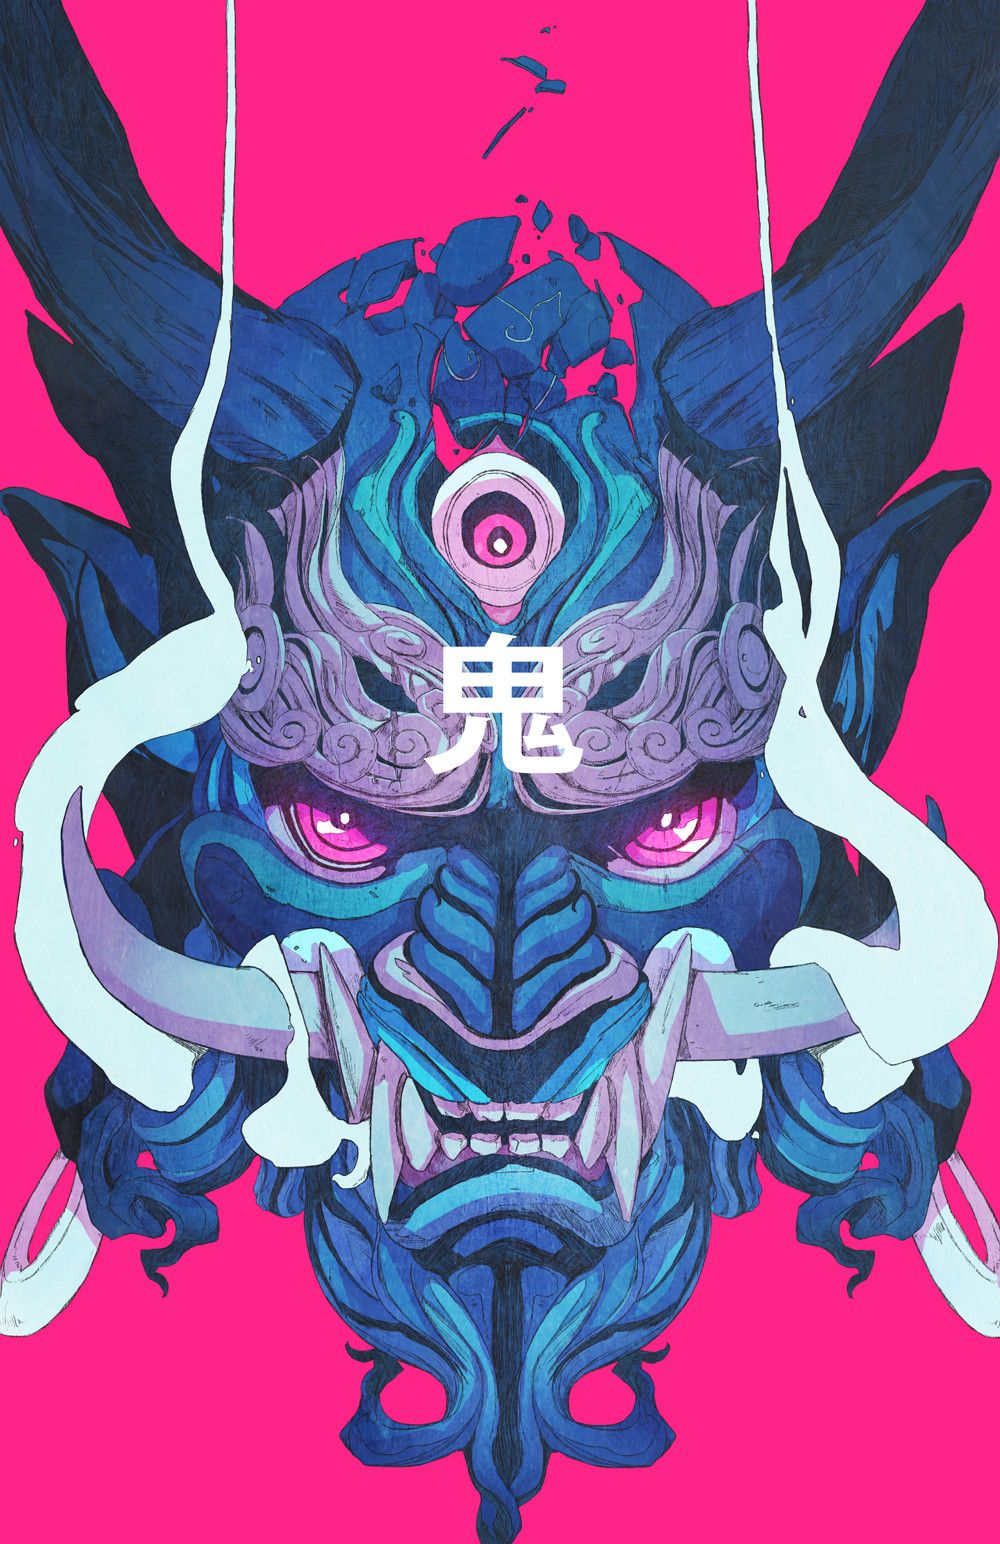 1000x1544 Wallpaper : mask, demon, samurai 1000x1544 - Kmaco - 1213534 - HD ...